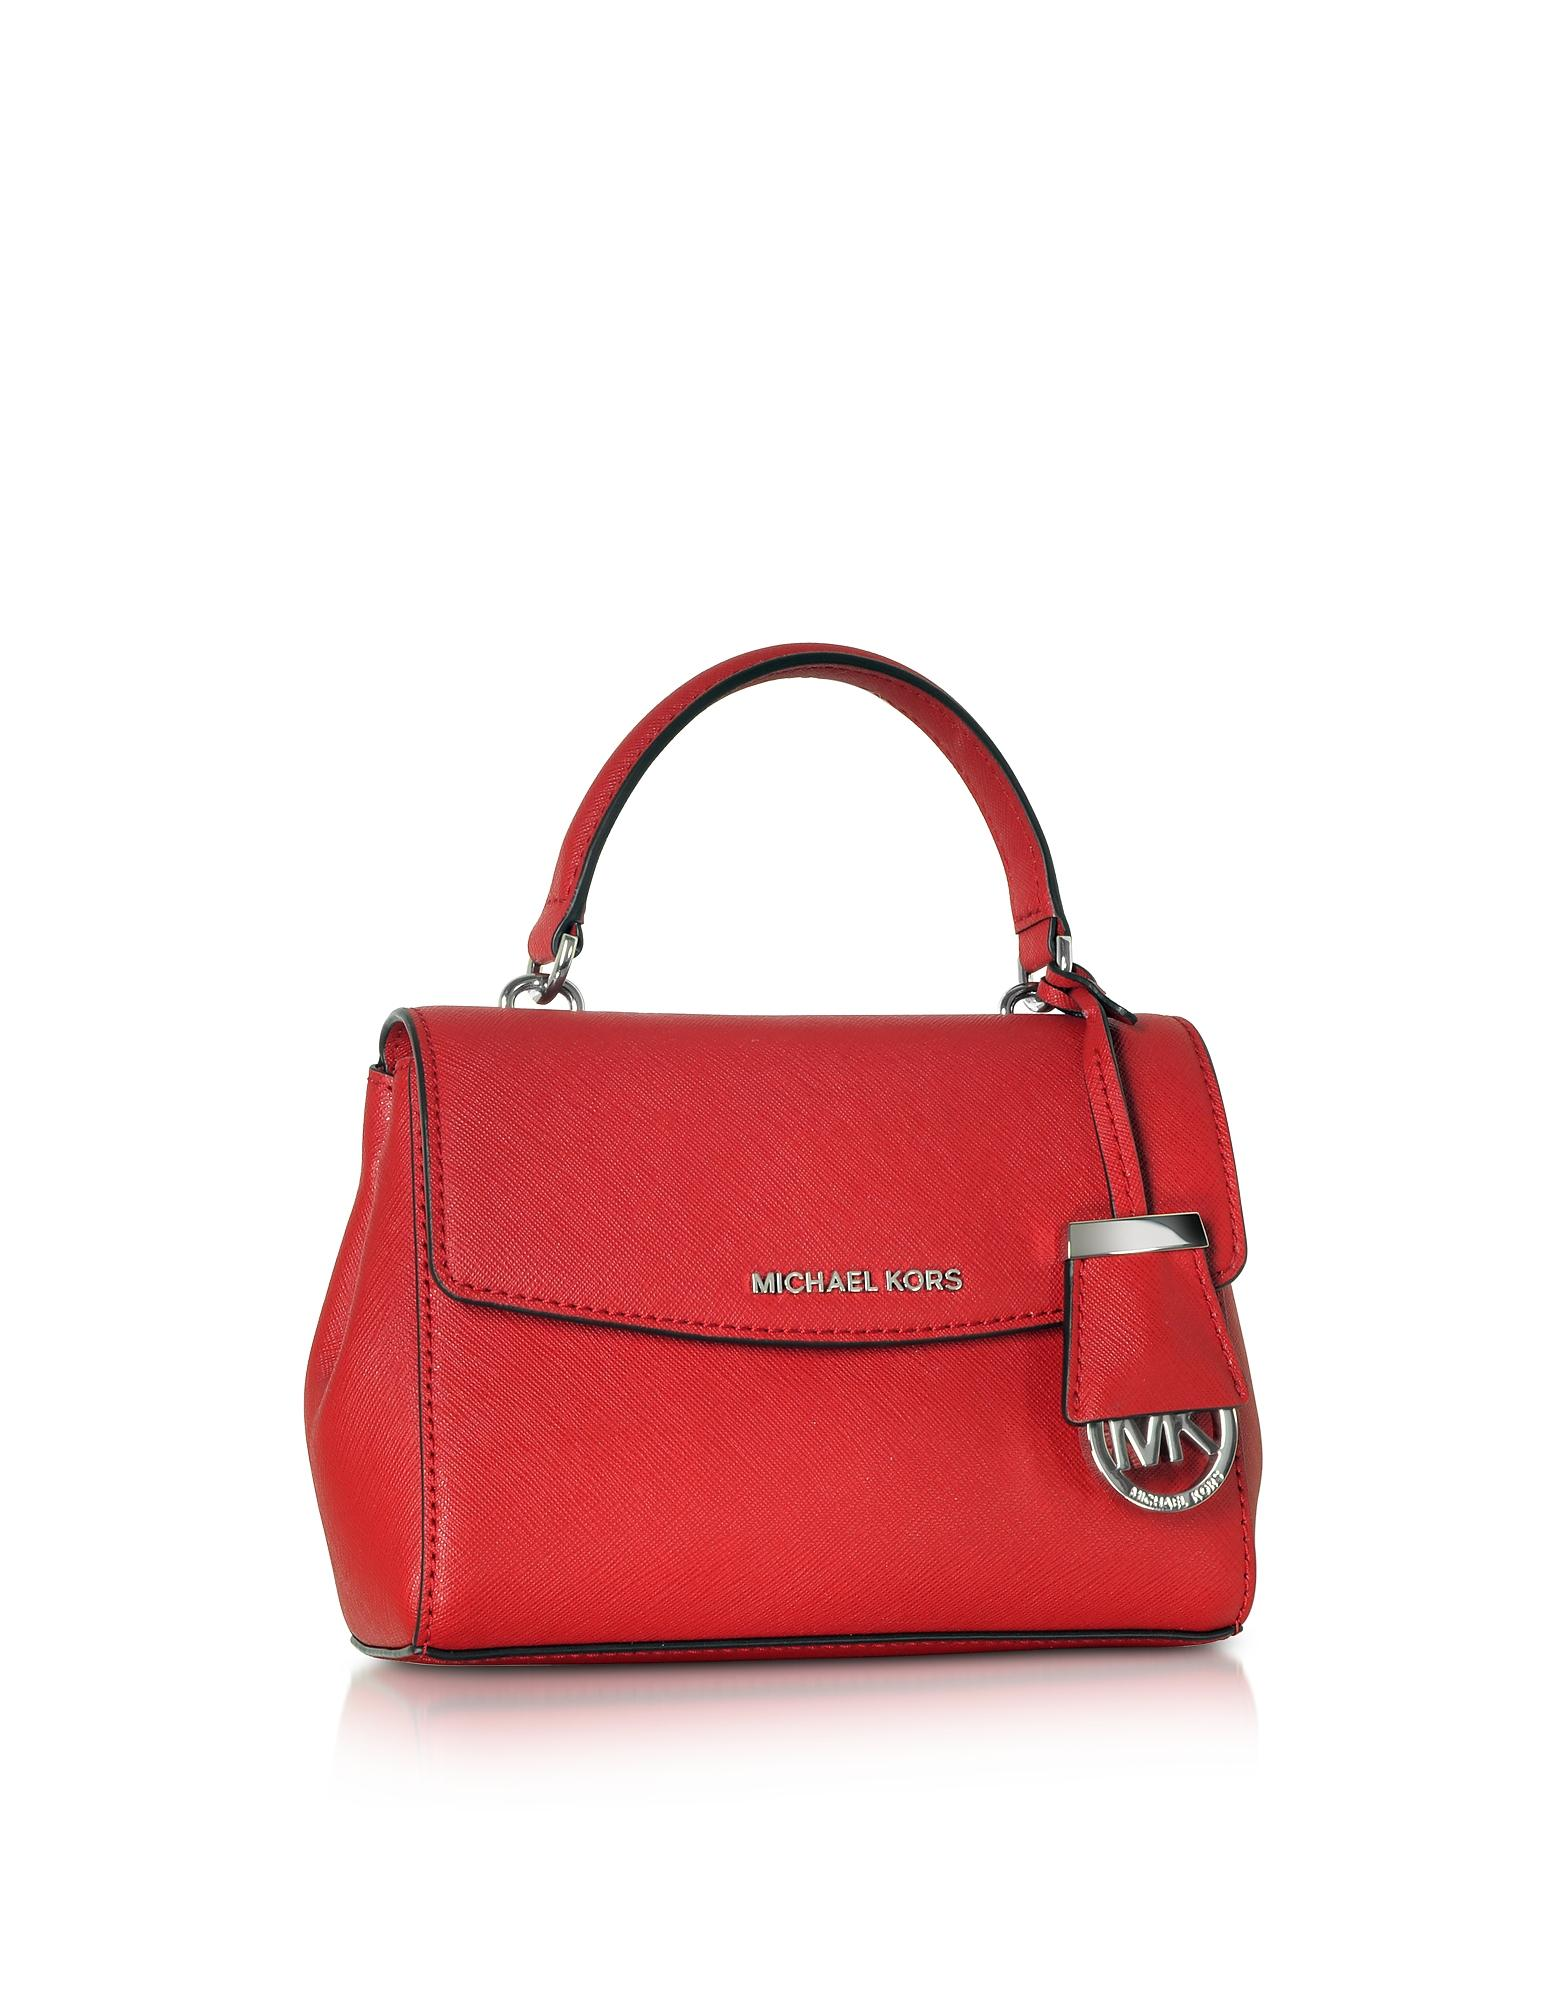 bc5044441006 Lyst - Michael Kors Ava Bright Red Saffiano Leather Xs Crossbody Bag ...